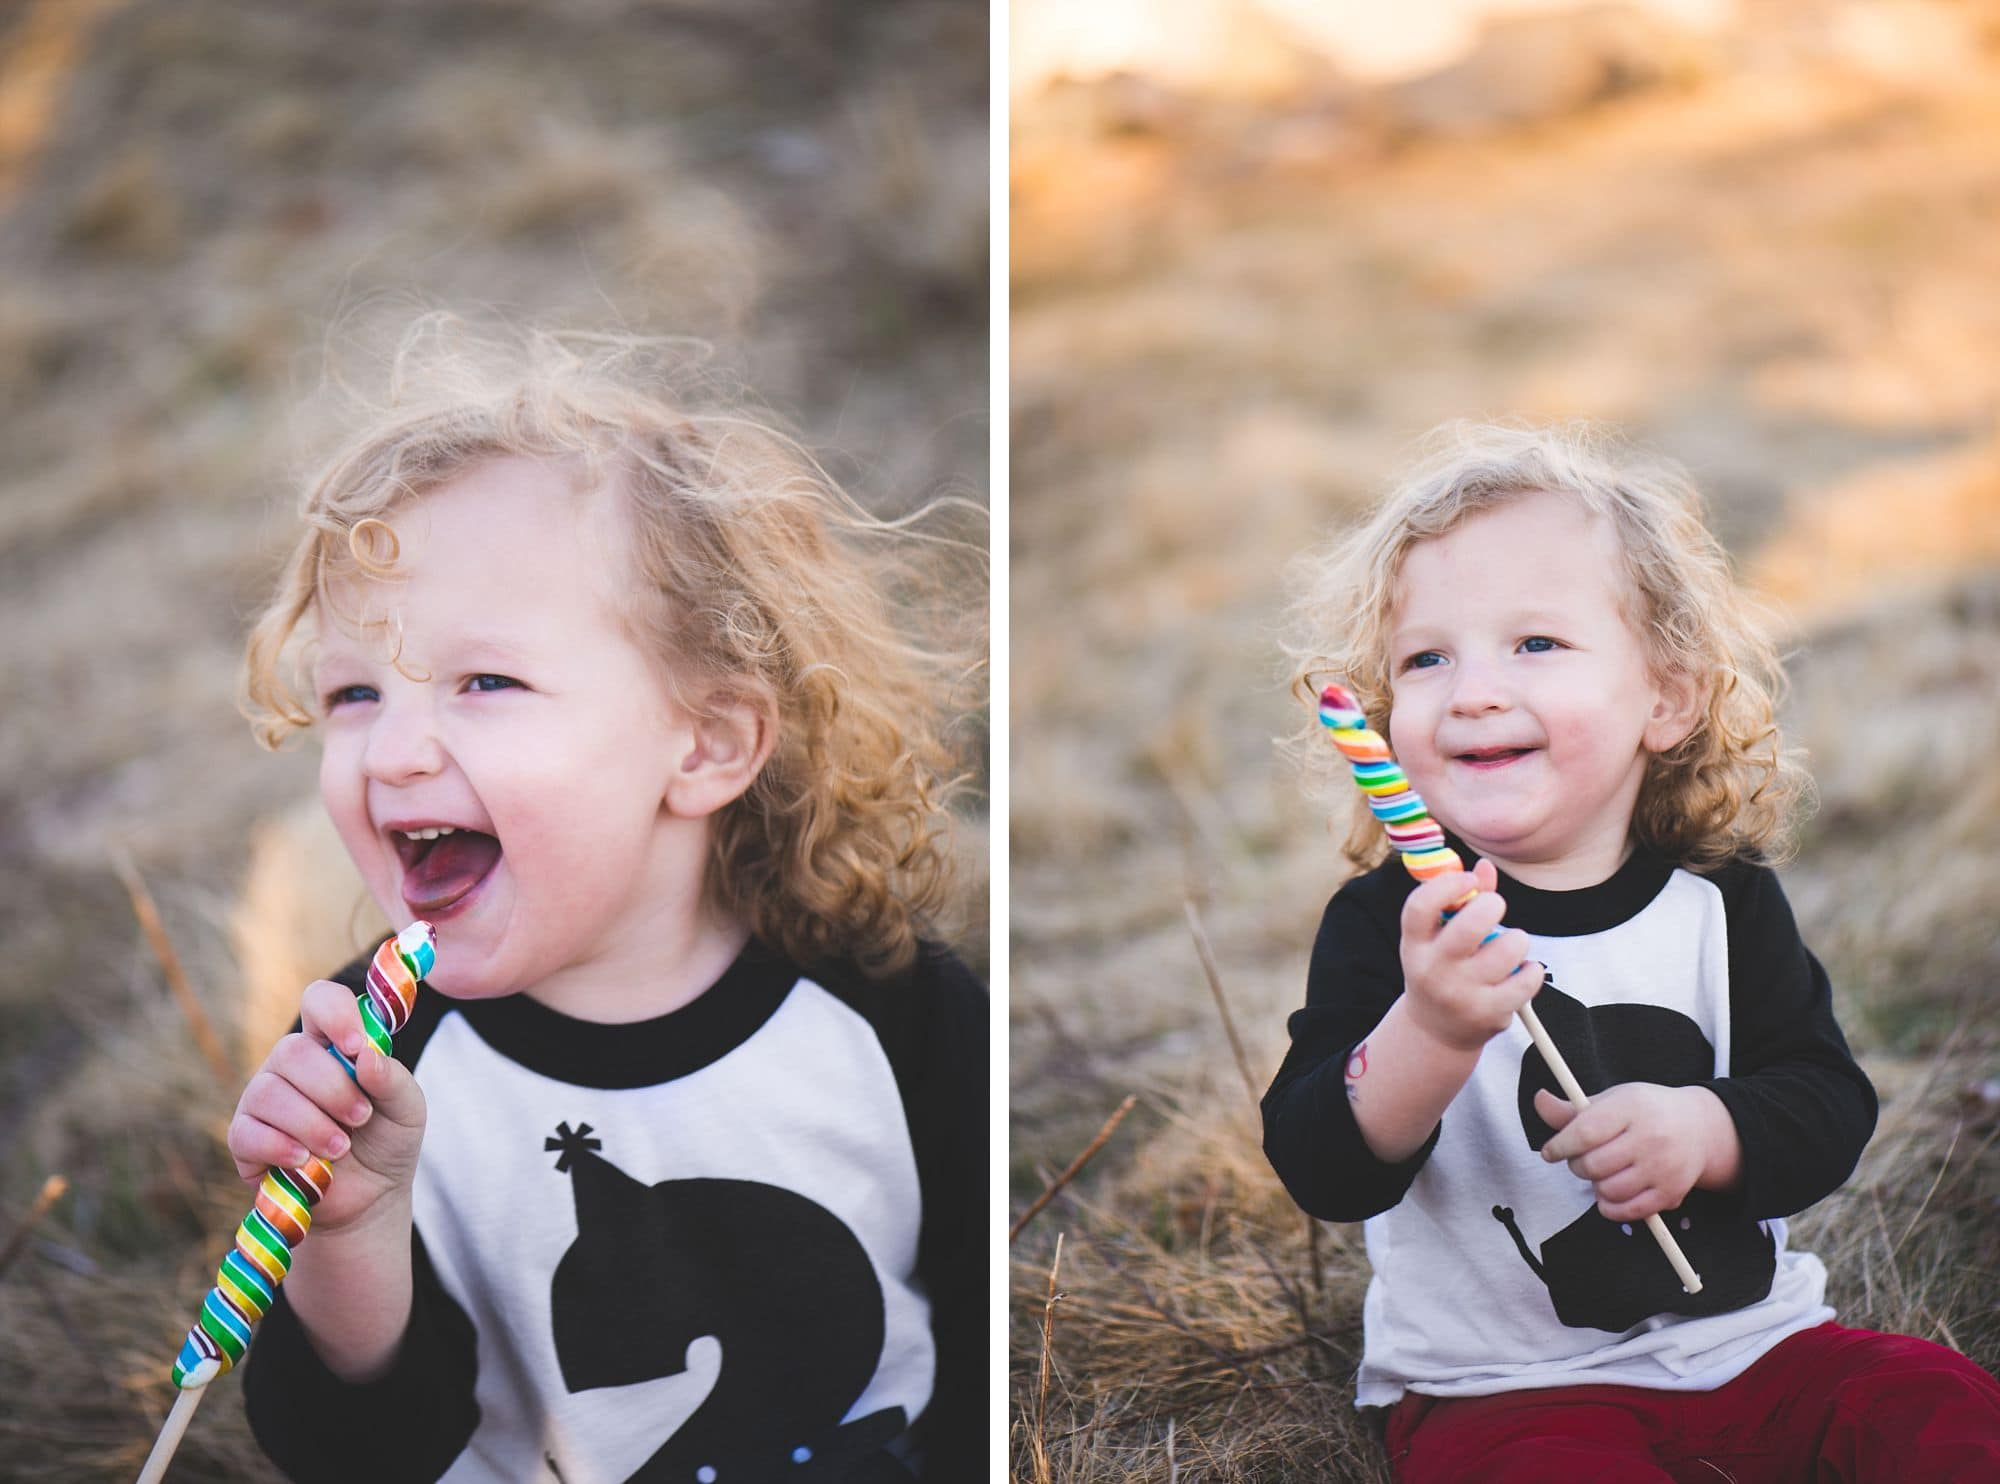 Two year old boy laughing and enjoying a candy in an open field